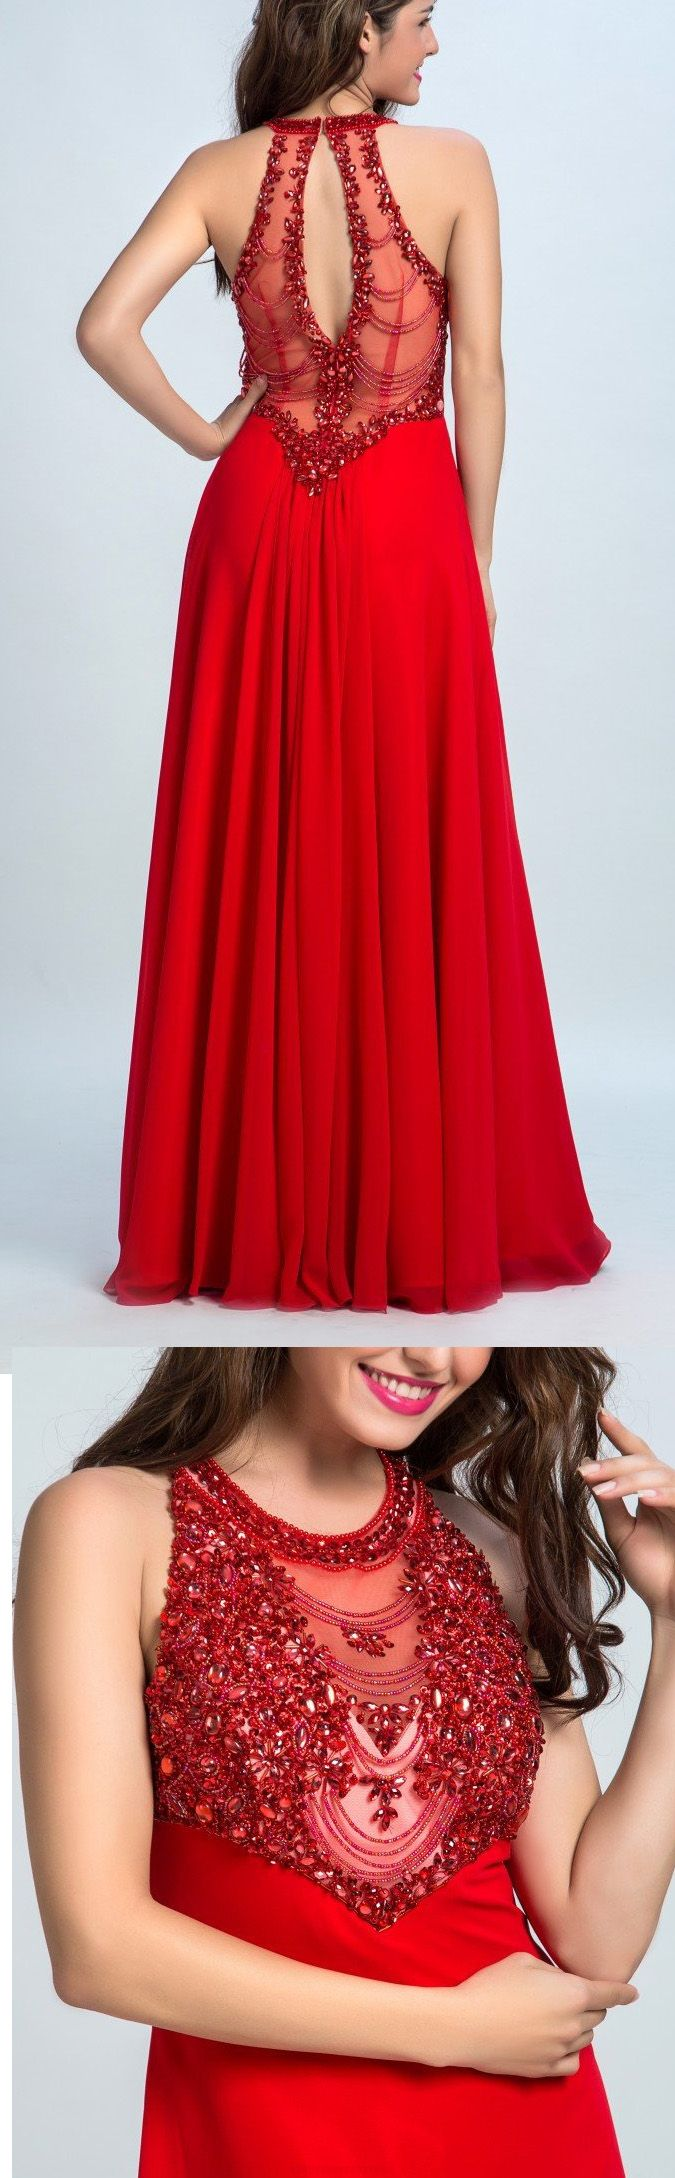 Sleeveless evening dresses red sleeveless prom dresses long